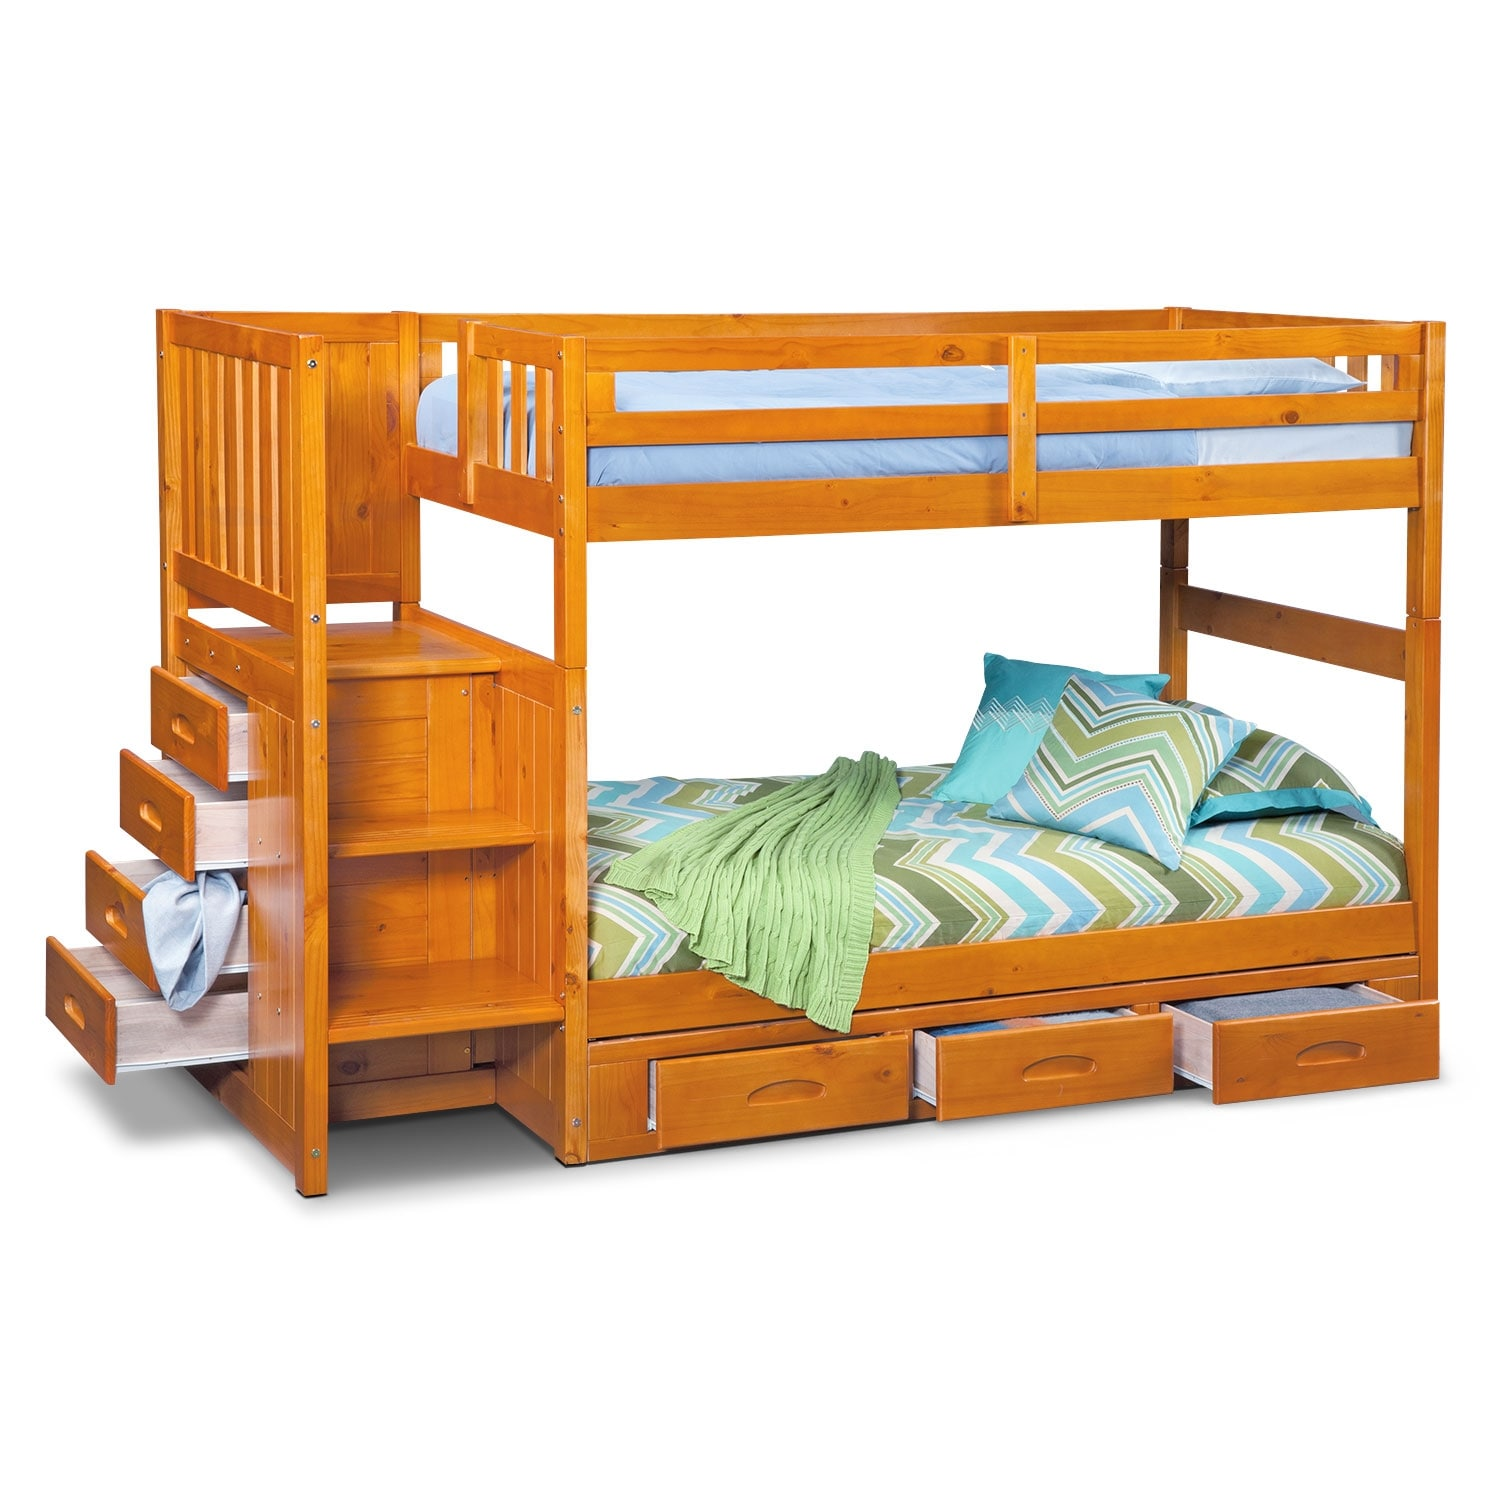 Ranger twin over twin bunk bed with storage stairs underbed drawers american signature furniture - Bunk bed with drawer steps ...